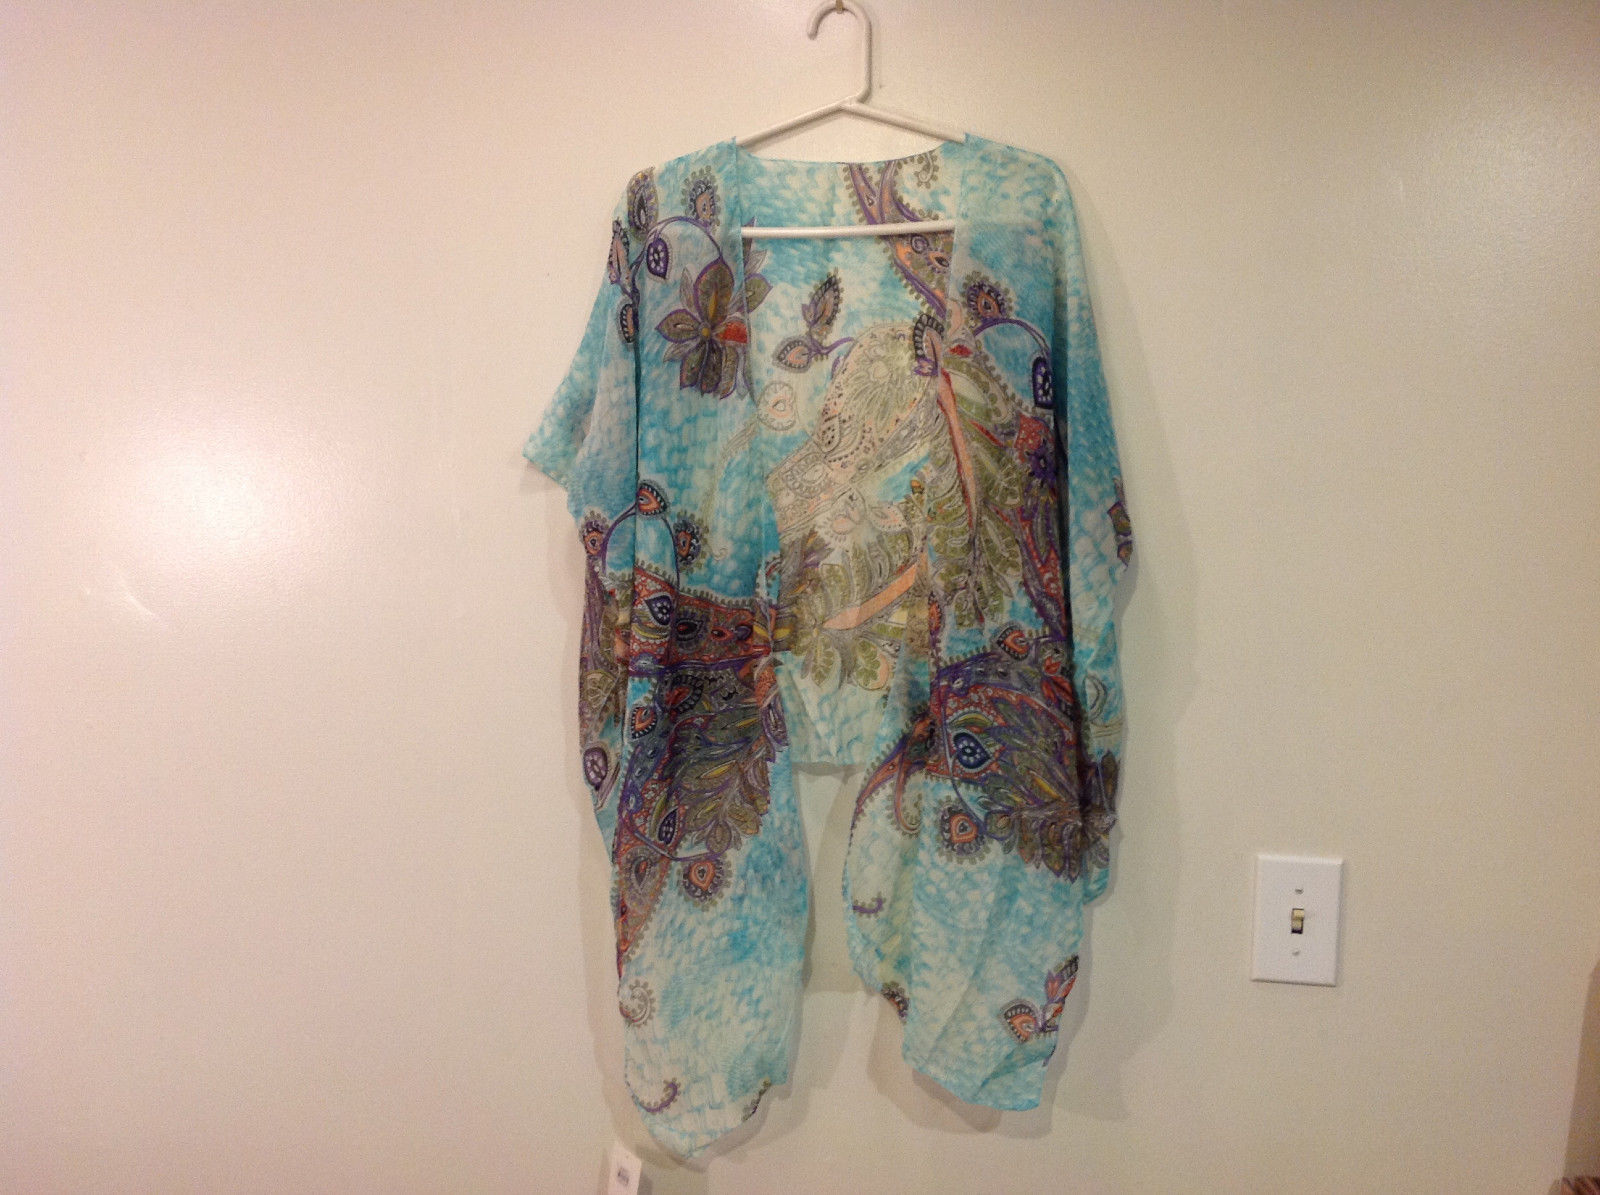 MAD fashion New Ms. Kimono Cover Up Top Blouse, one size fit all, Blue or Green